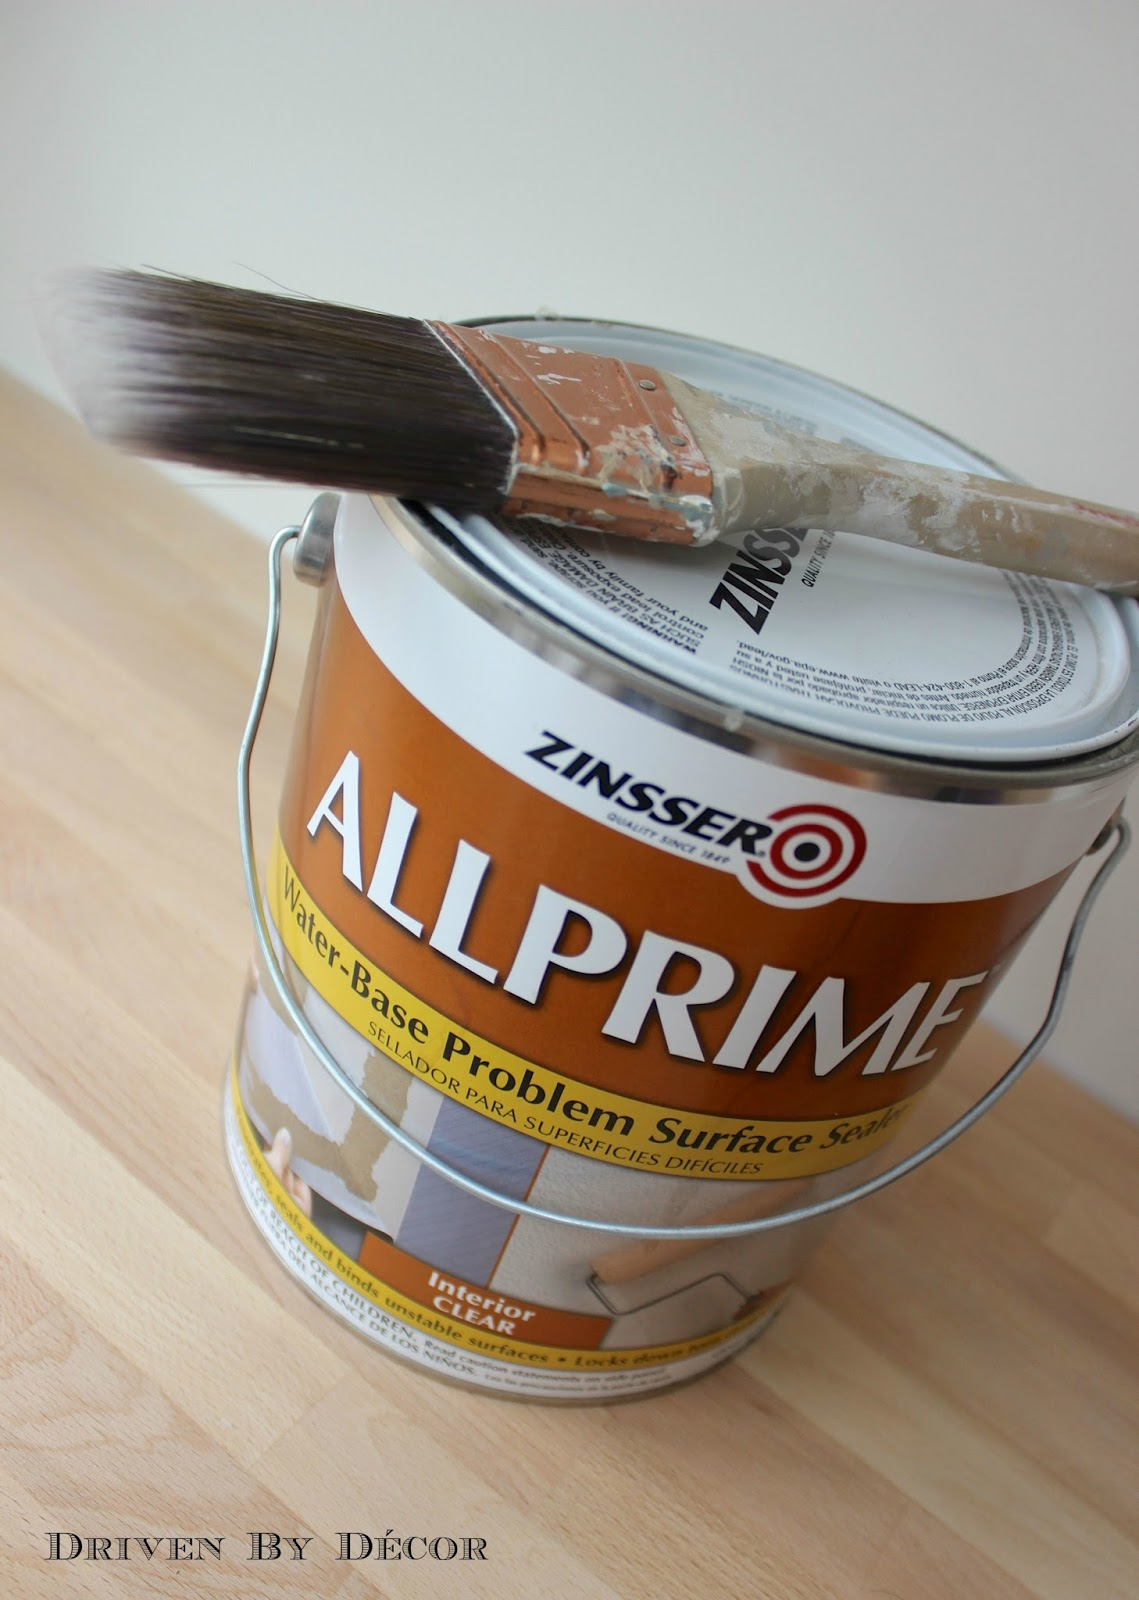 After Stripping The Wallpaper And Scraping Scrubbing Off Residual Glue I Lightly Sanded Walls Then Brushed On A Coat Of Zinsser ALLPRIME